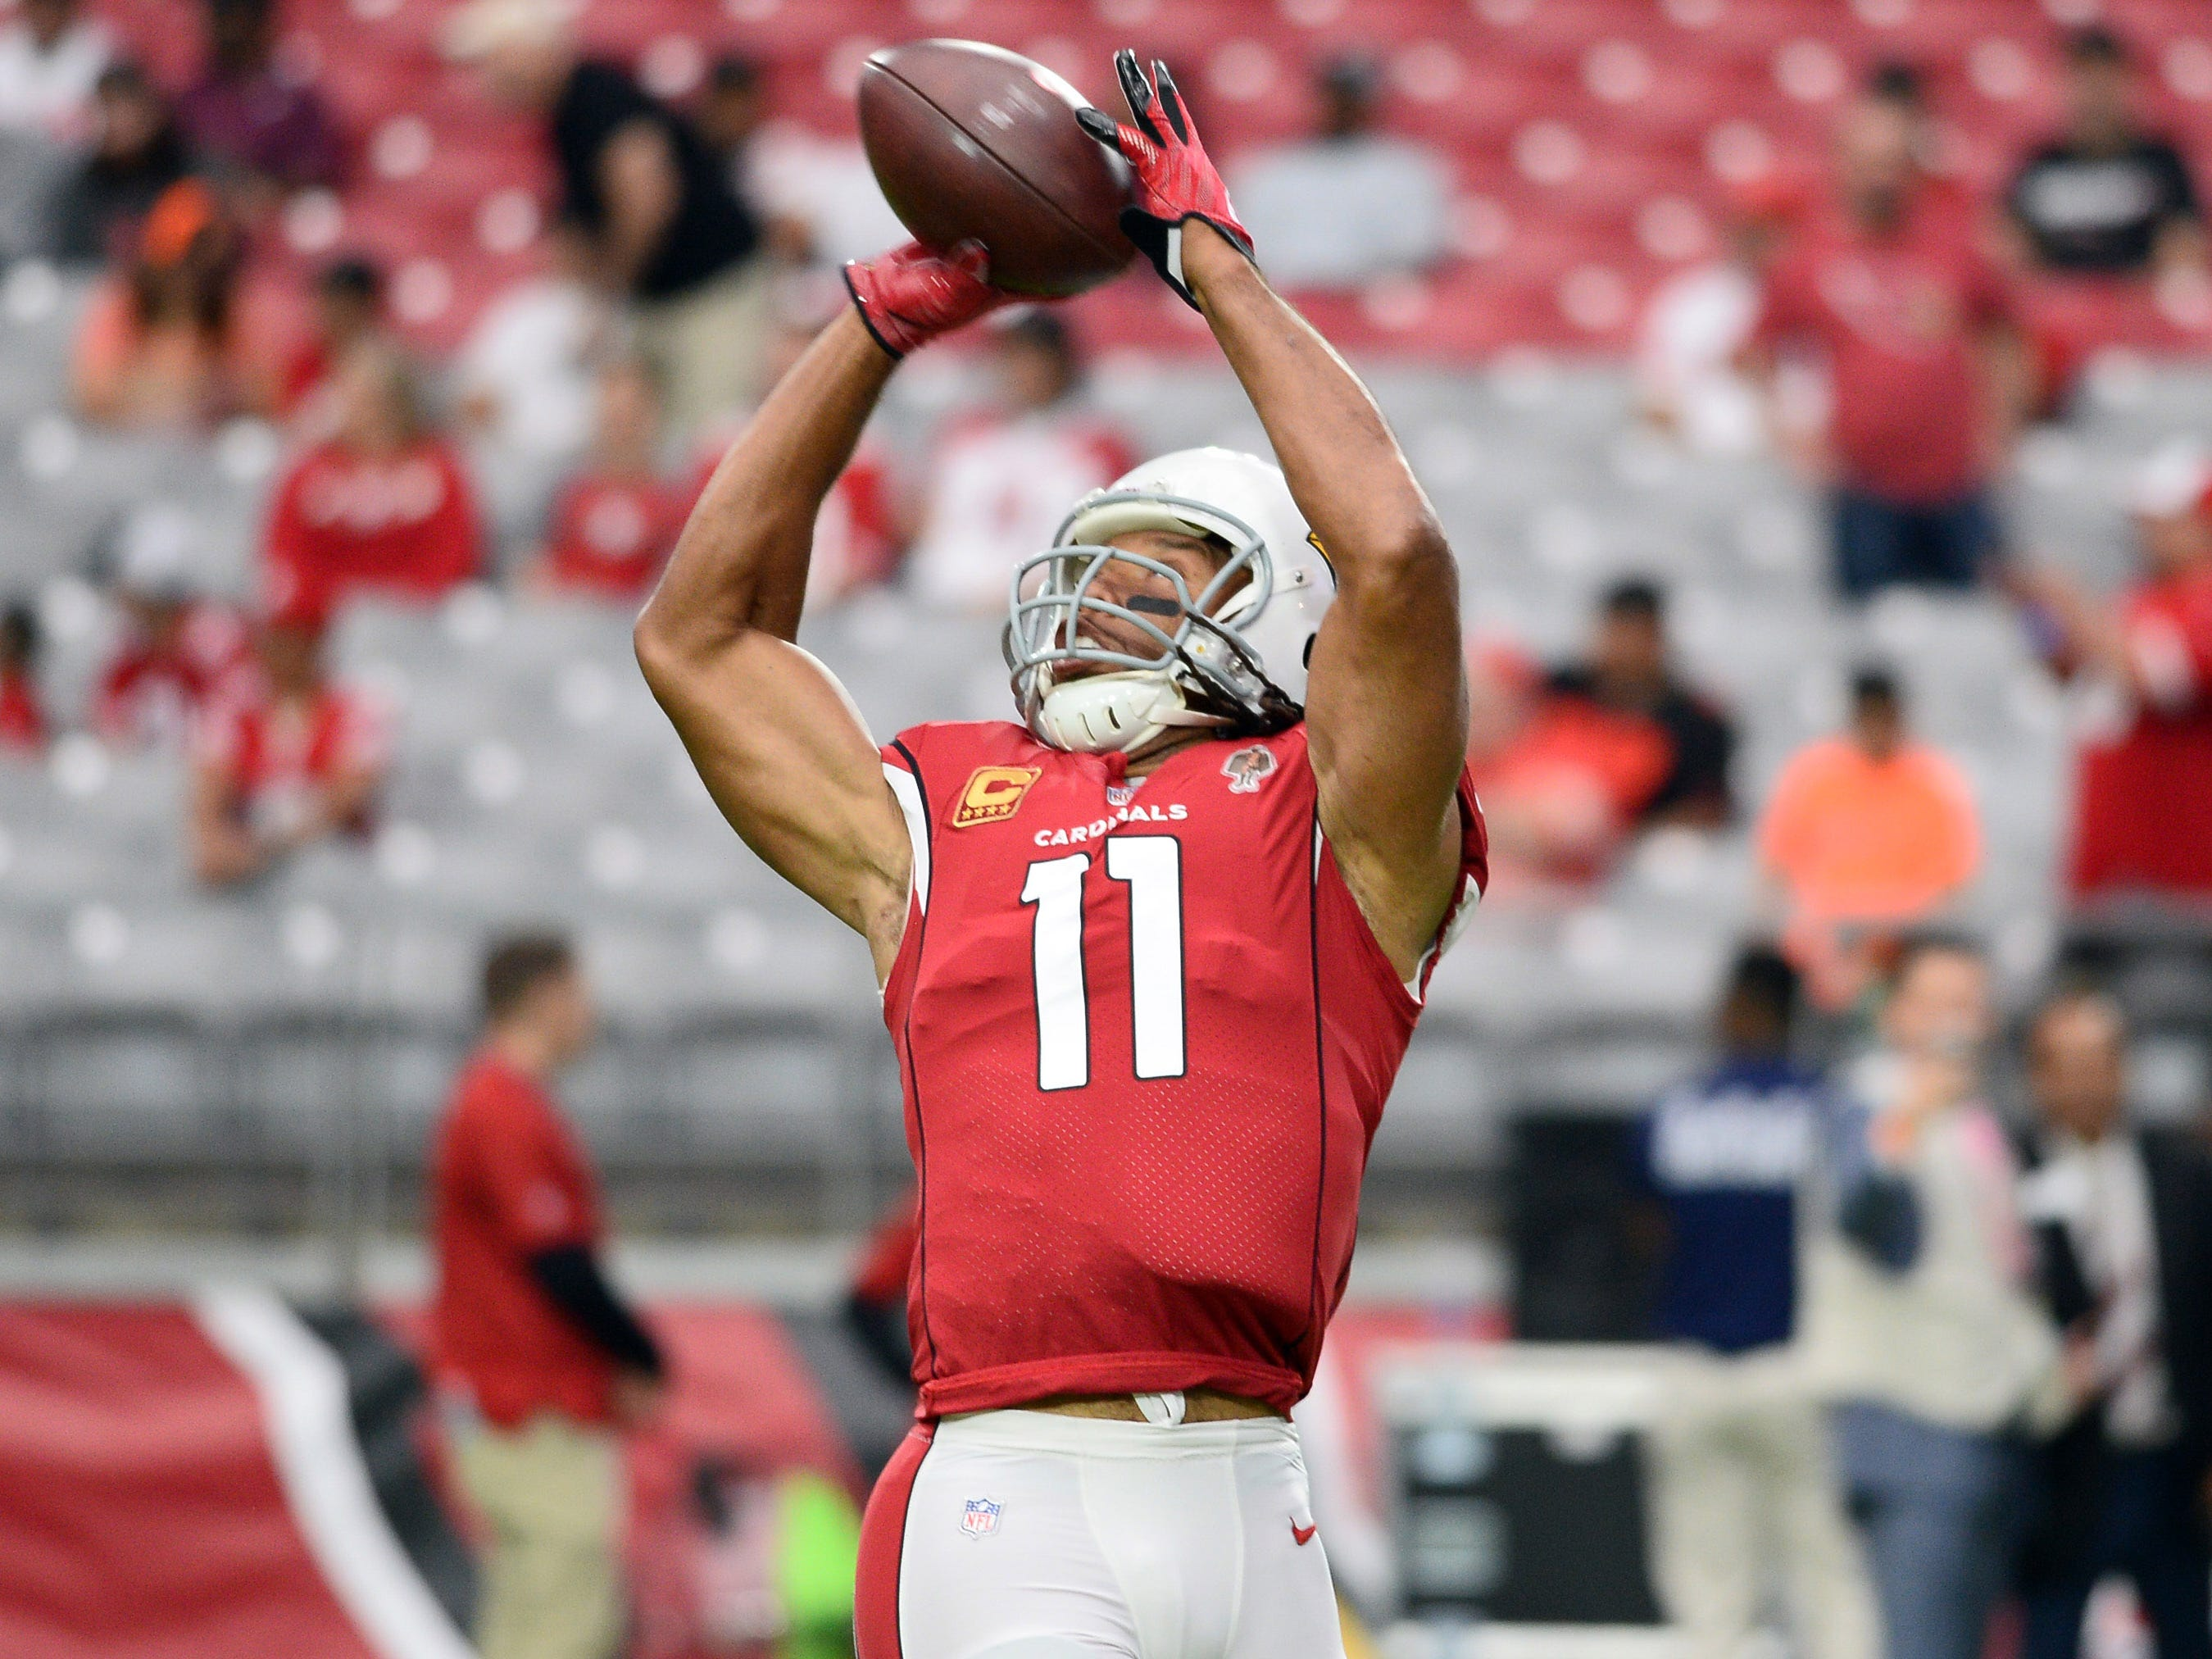 Oct 28, 2018; Glendale, AZ, USA; Arizona Cardinals wide receiver Larry Fitzgerald (11) warms up prior to facing the San Francisco 49ers at State Farm Stadium.